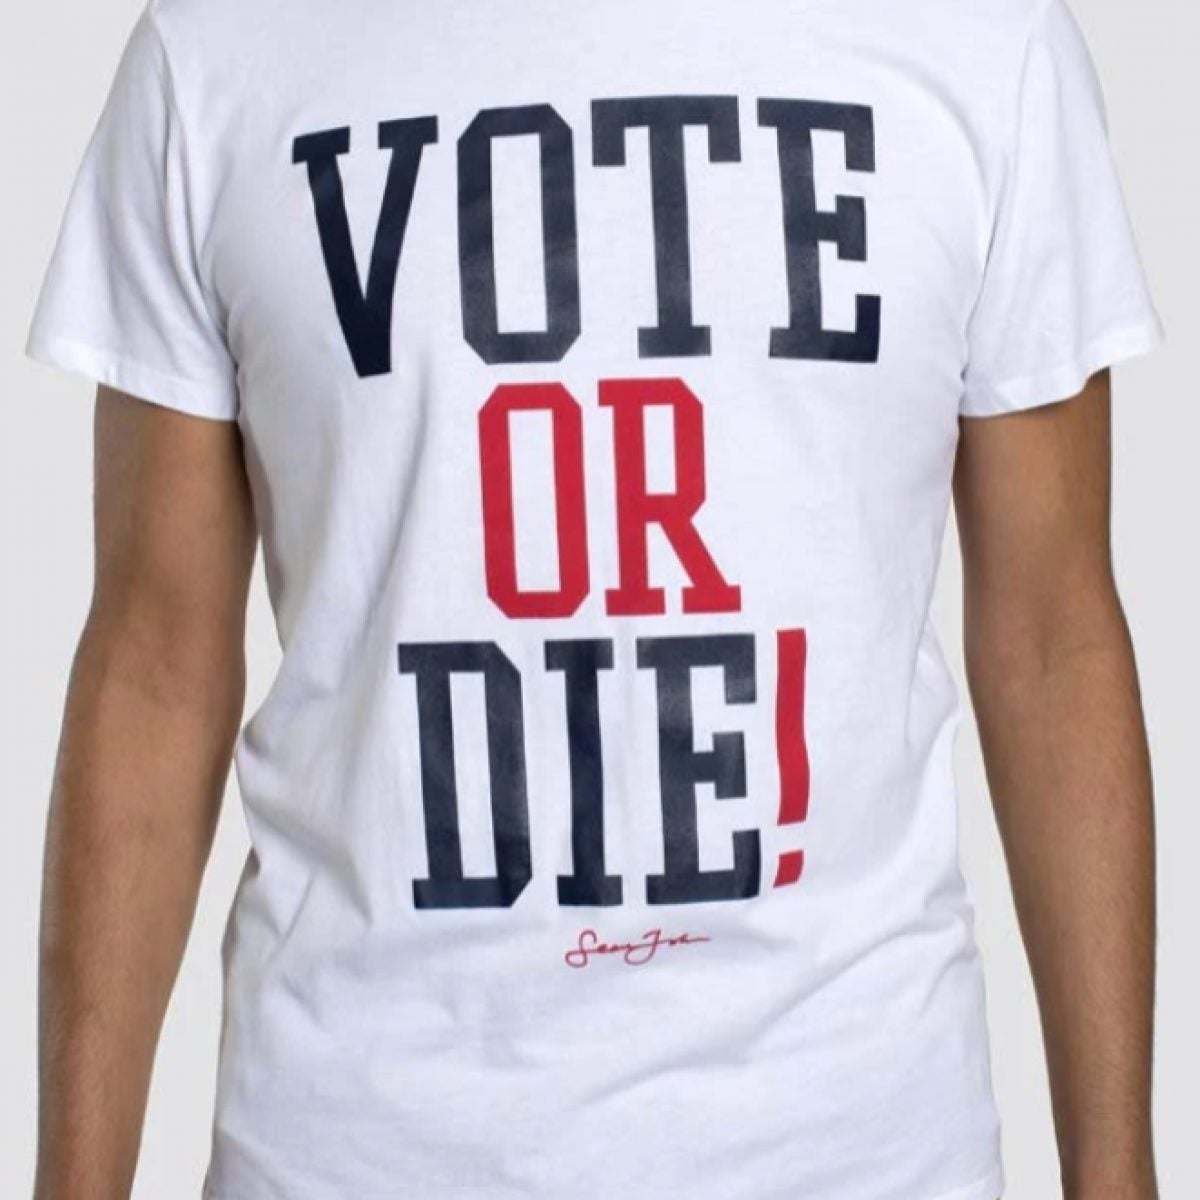 "Shop Now: Sean Jean Relaunches Popular 'Vote Or Die"" Tee"